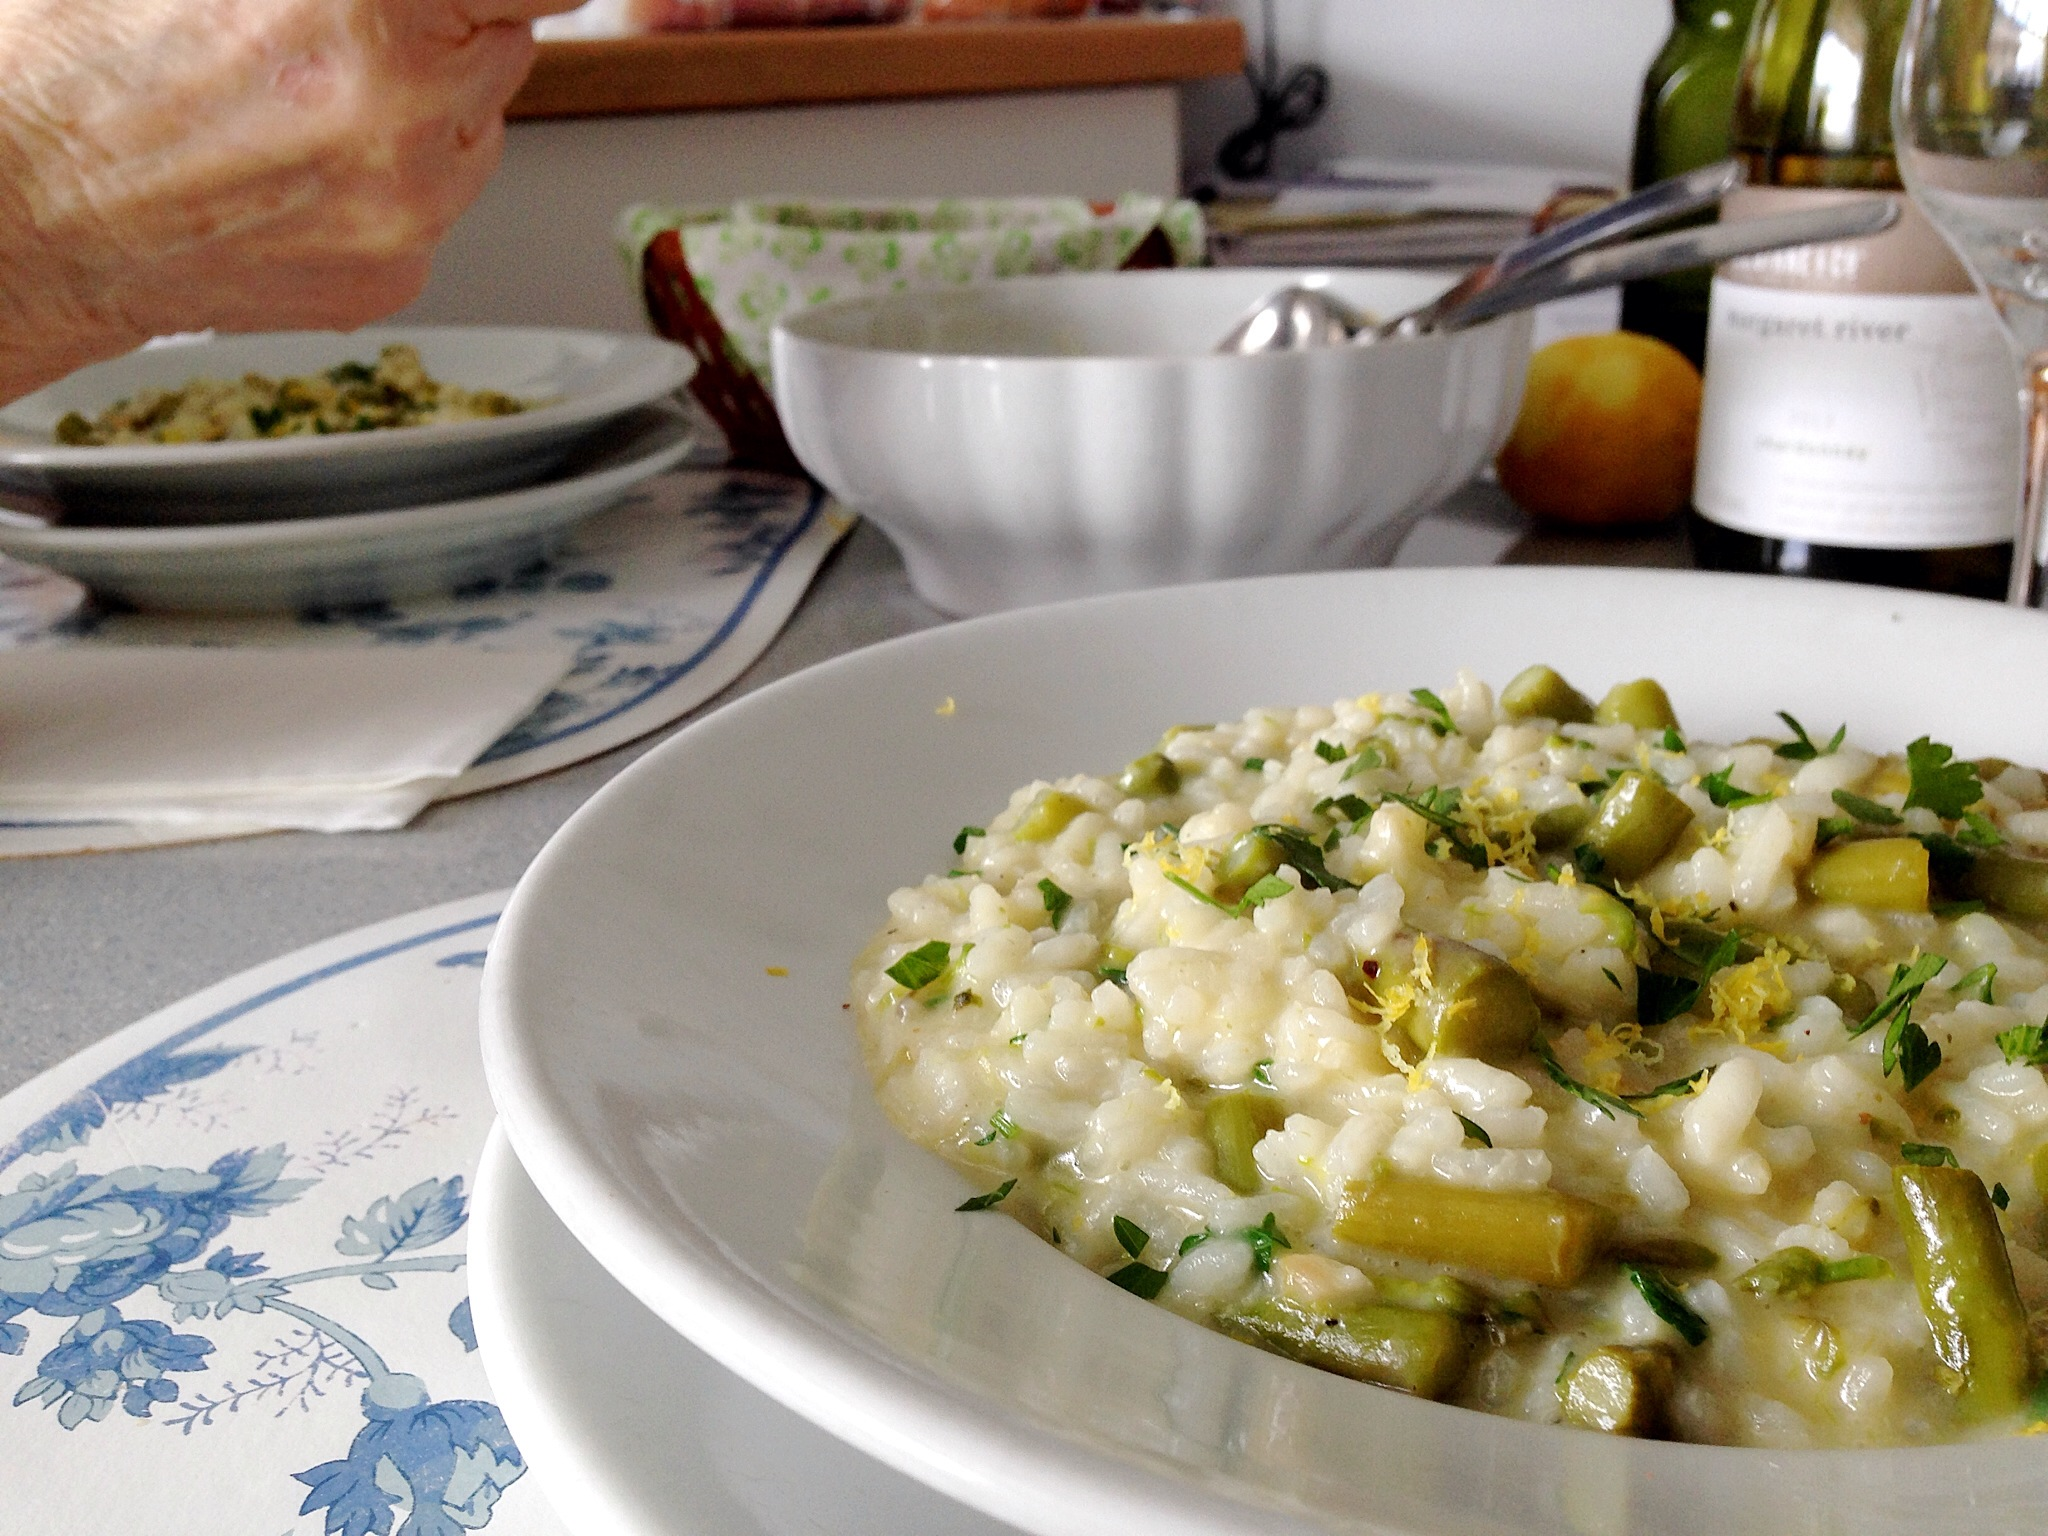 Cooking asparagus risotto with mamma